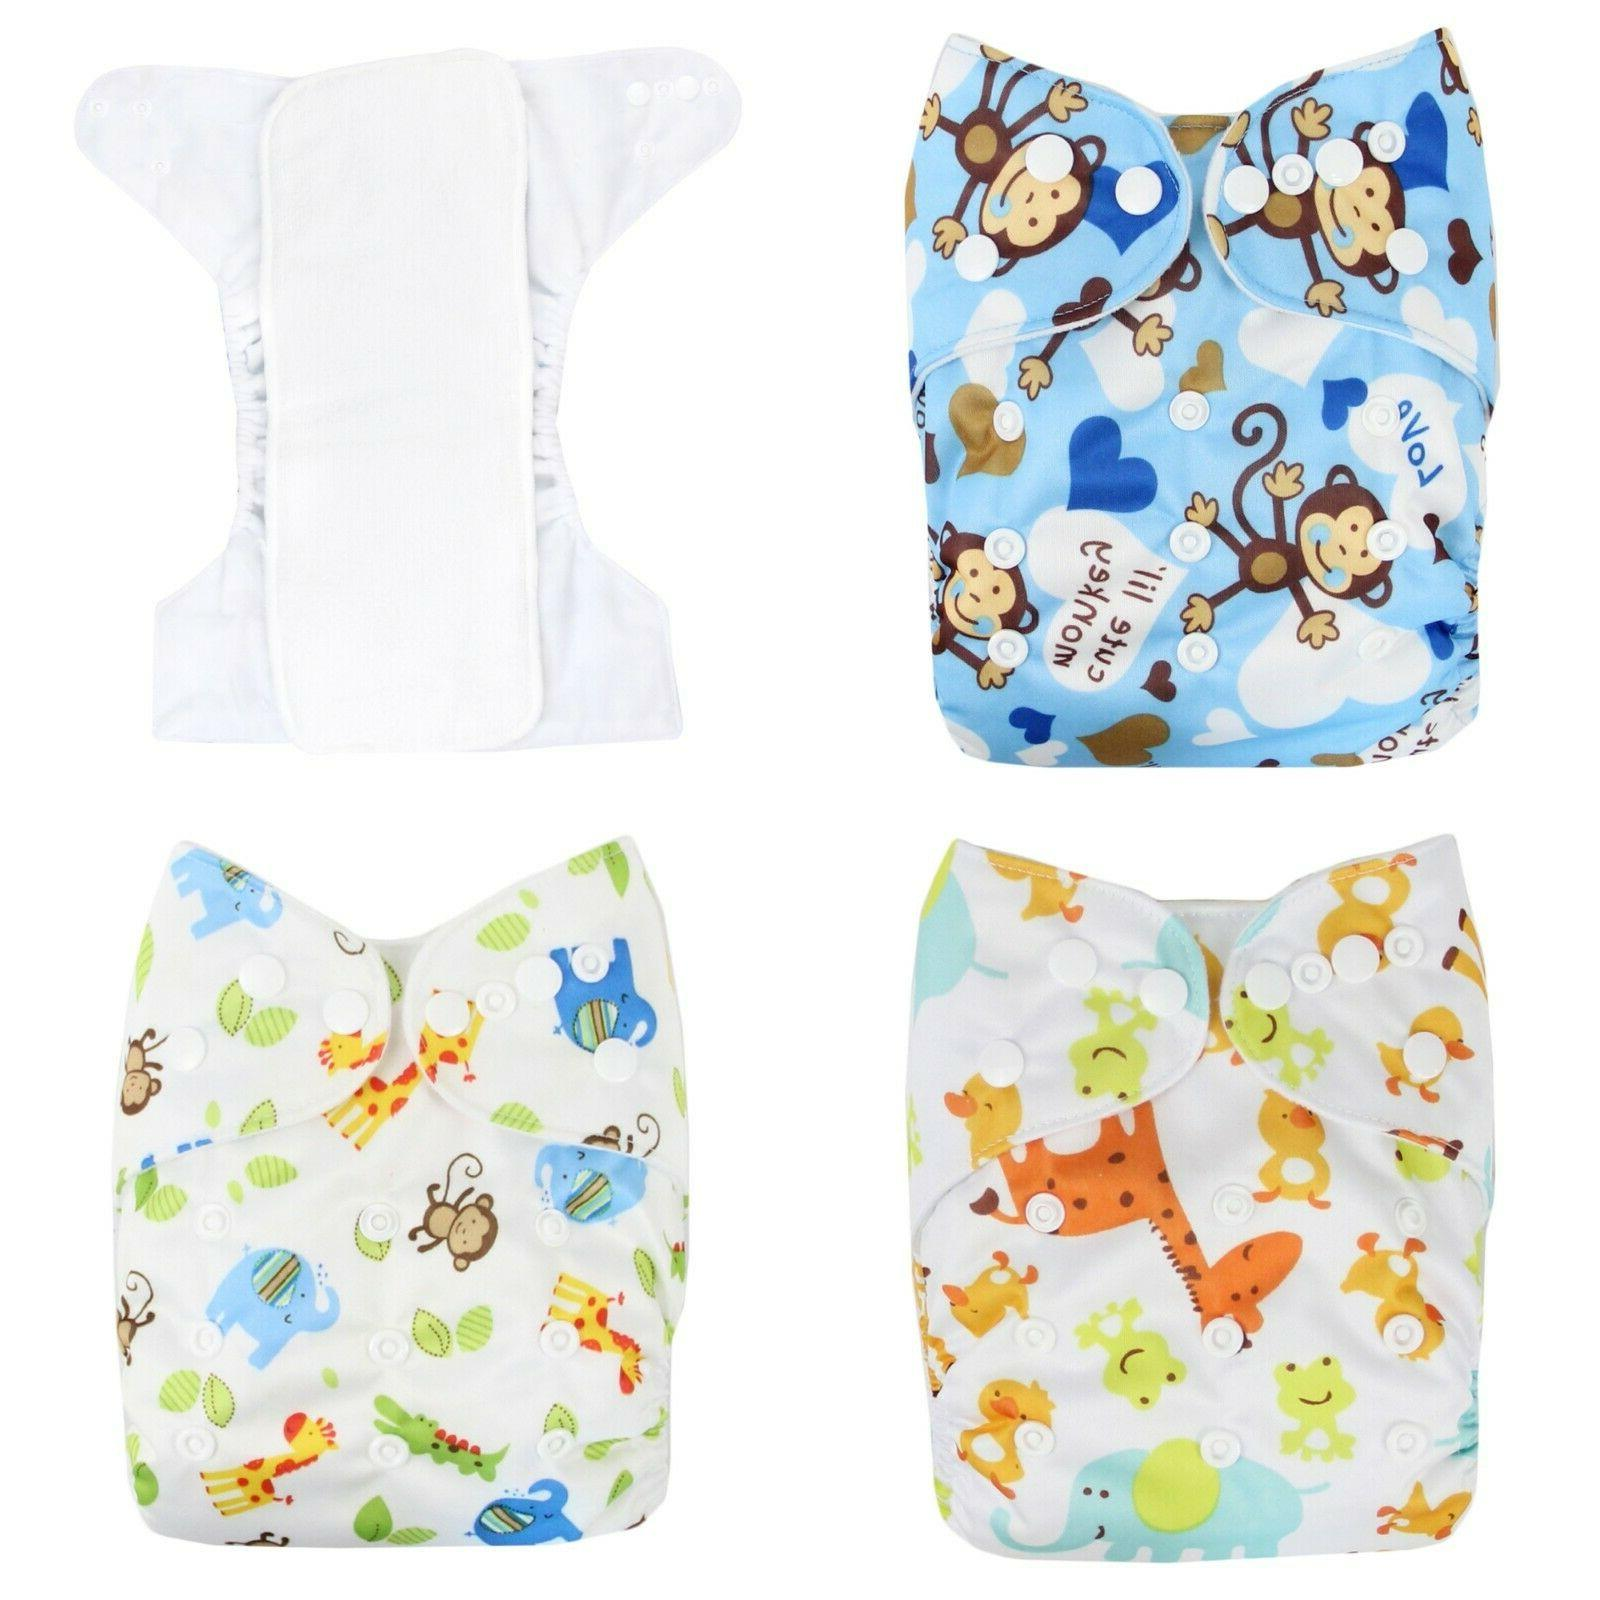 Reusable, Adjustable, Waterproof Baby Pocket with Inserts